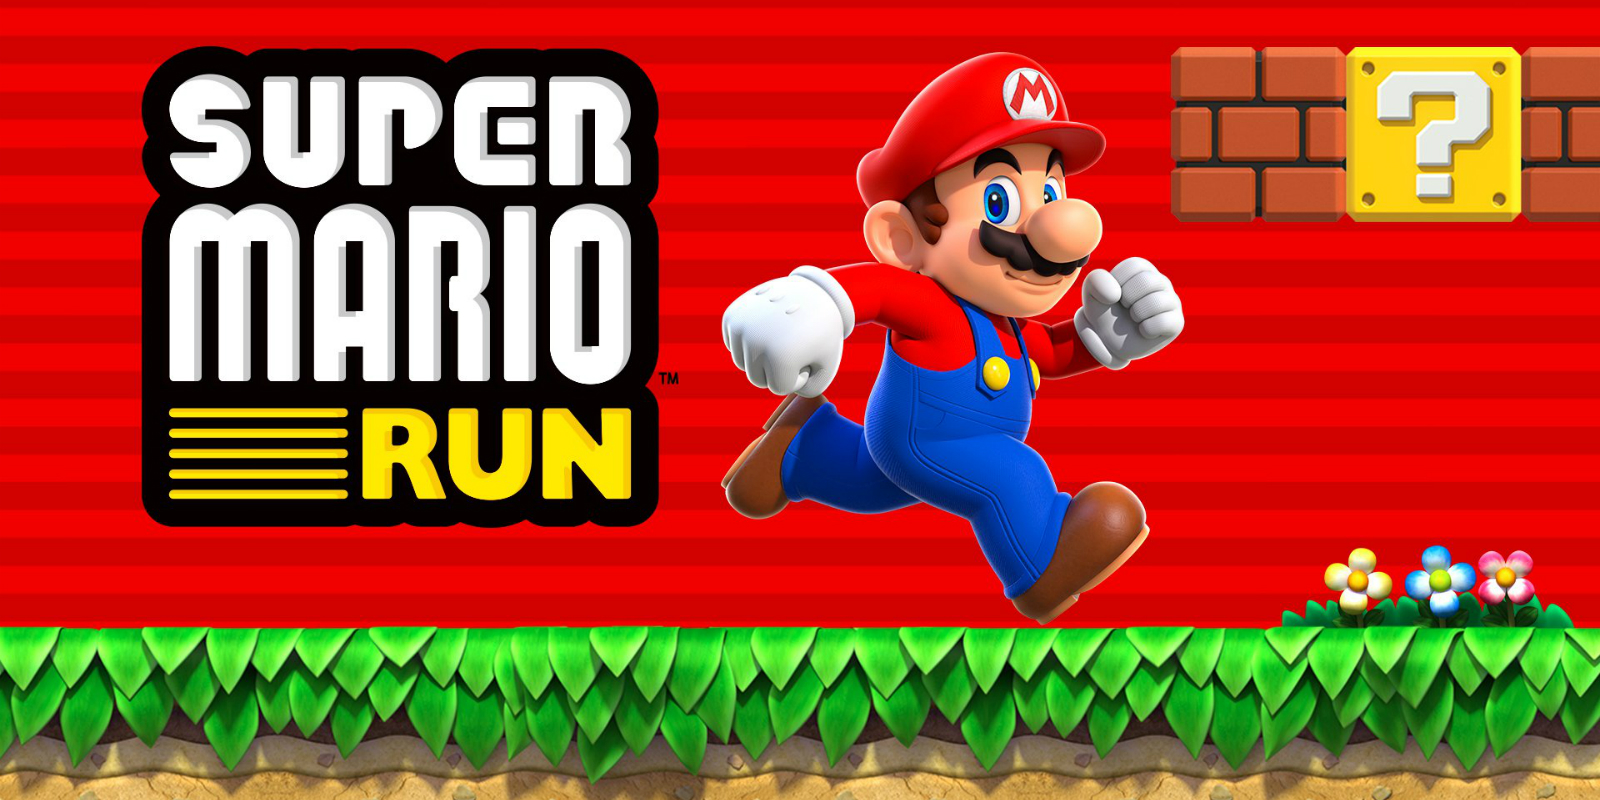 Super Mario Run: How to Unlock All Characters